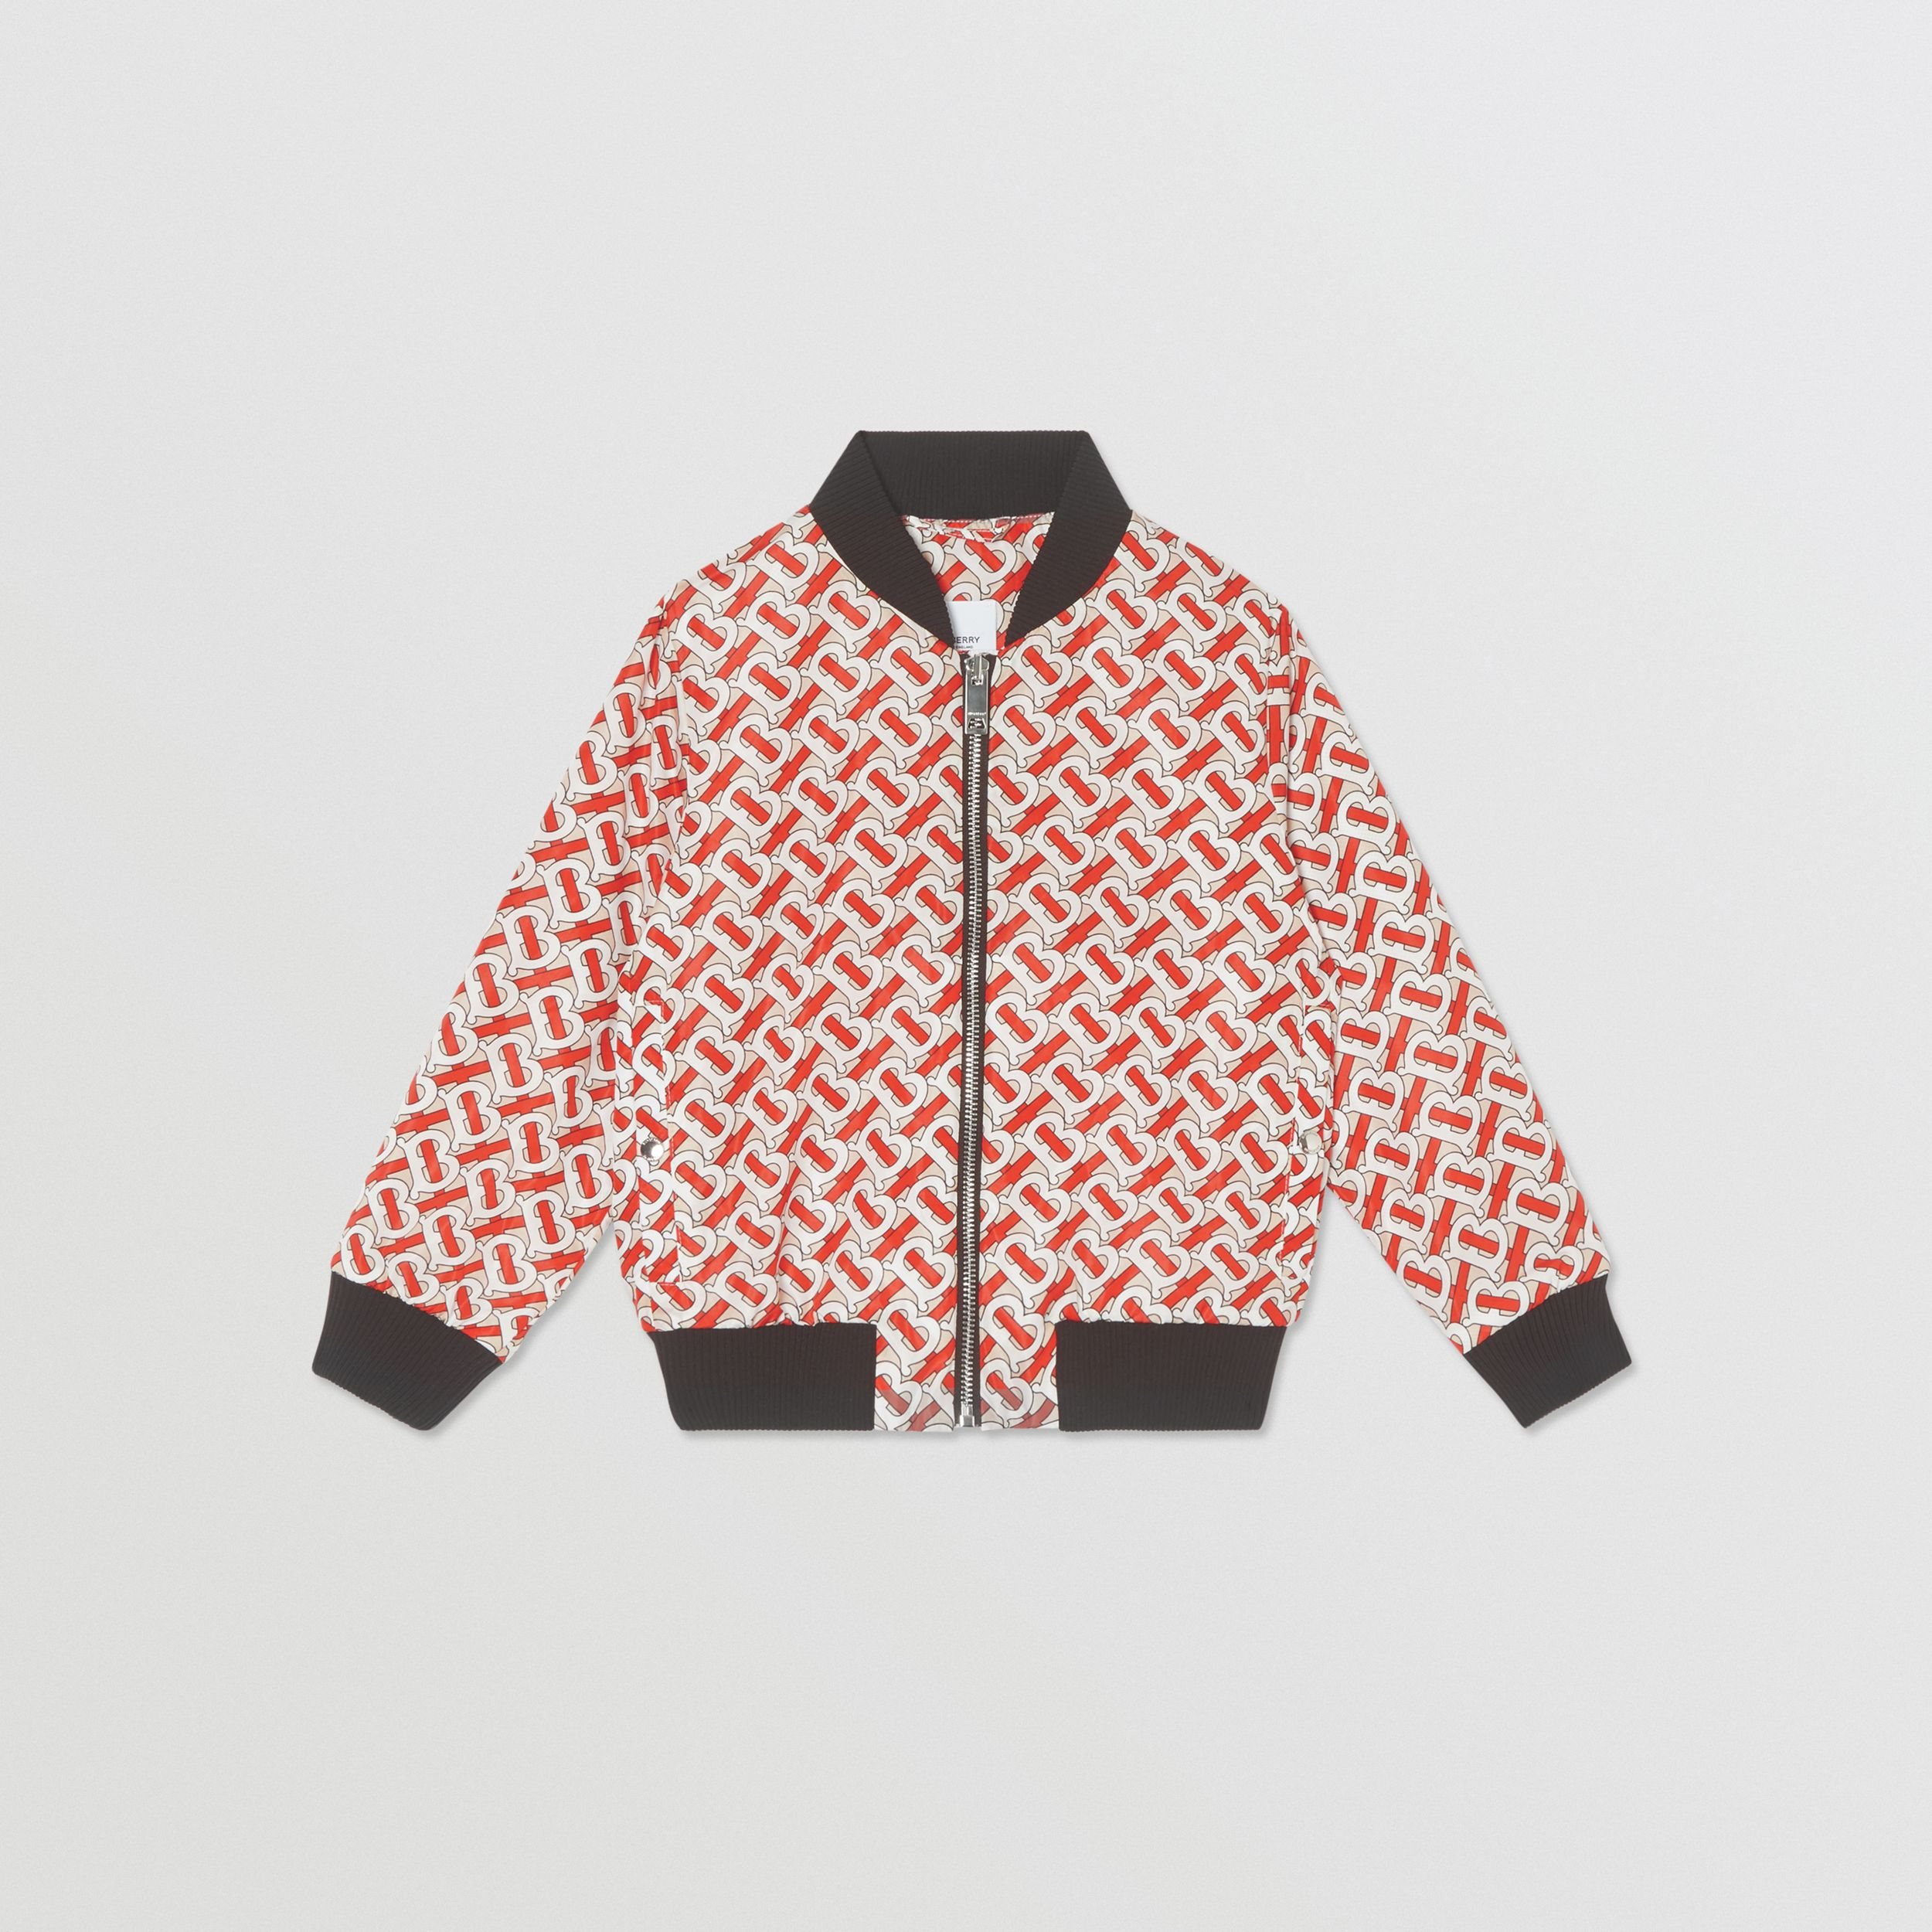 Monogram Print Nylon Bomber Jacket in Vermilion Red | Burberry - 1